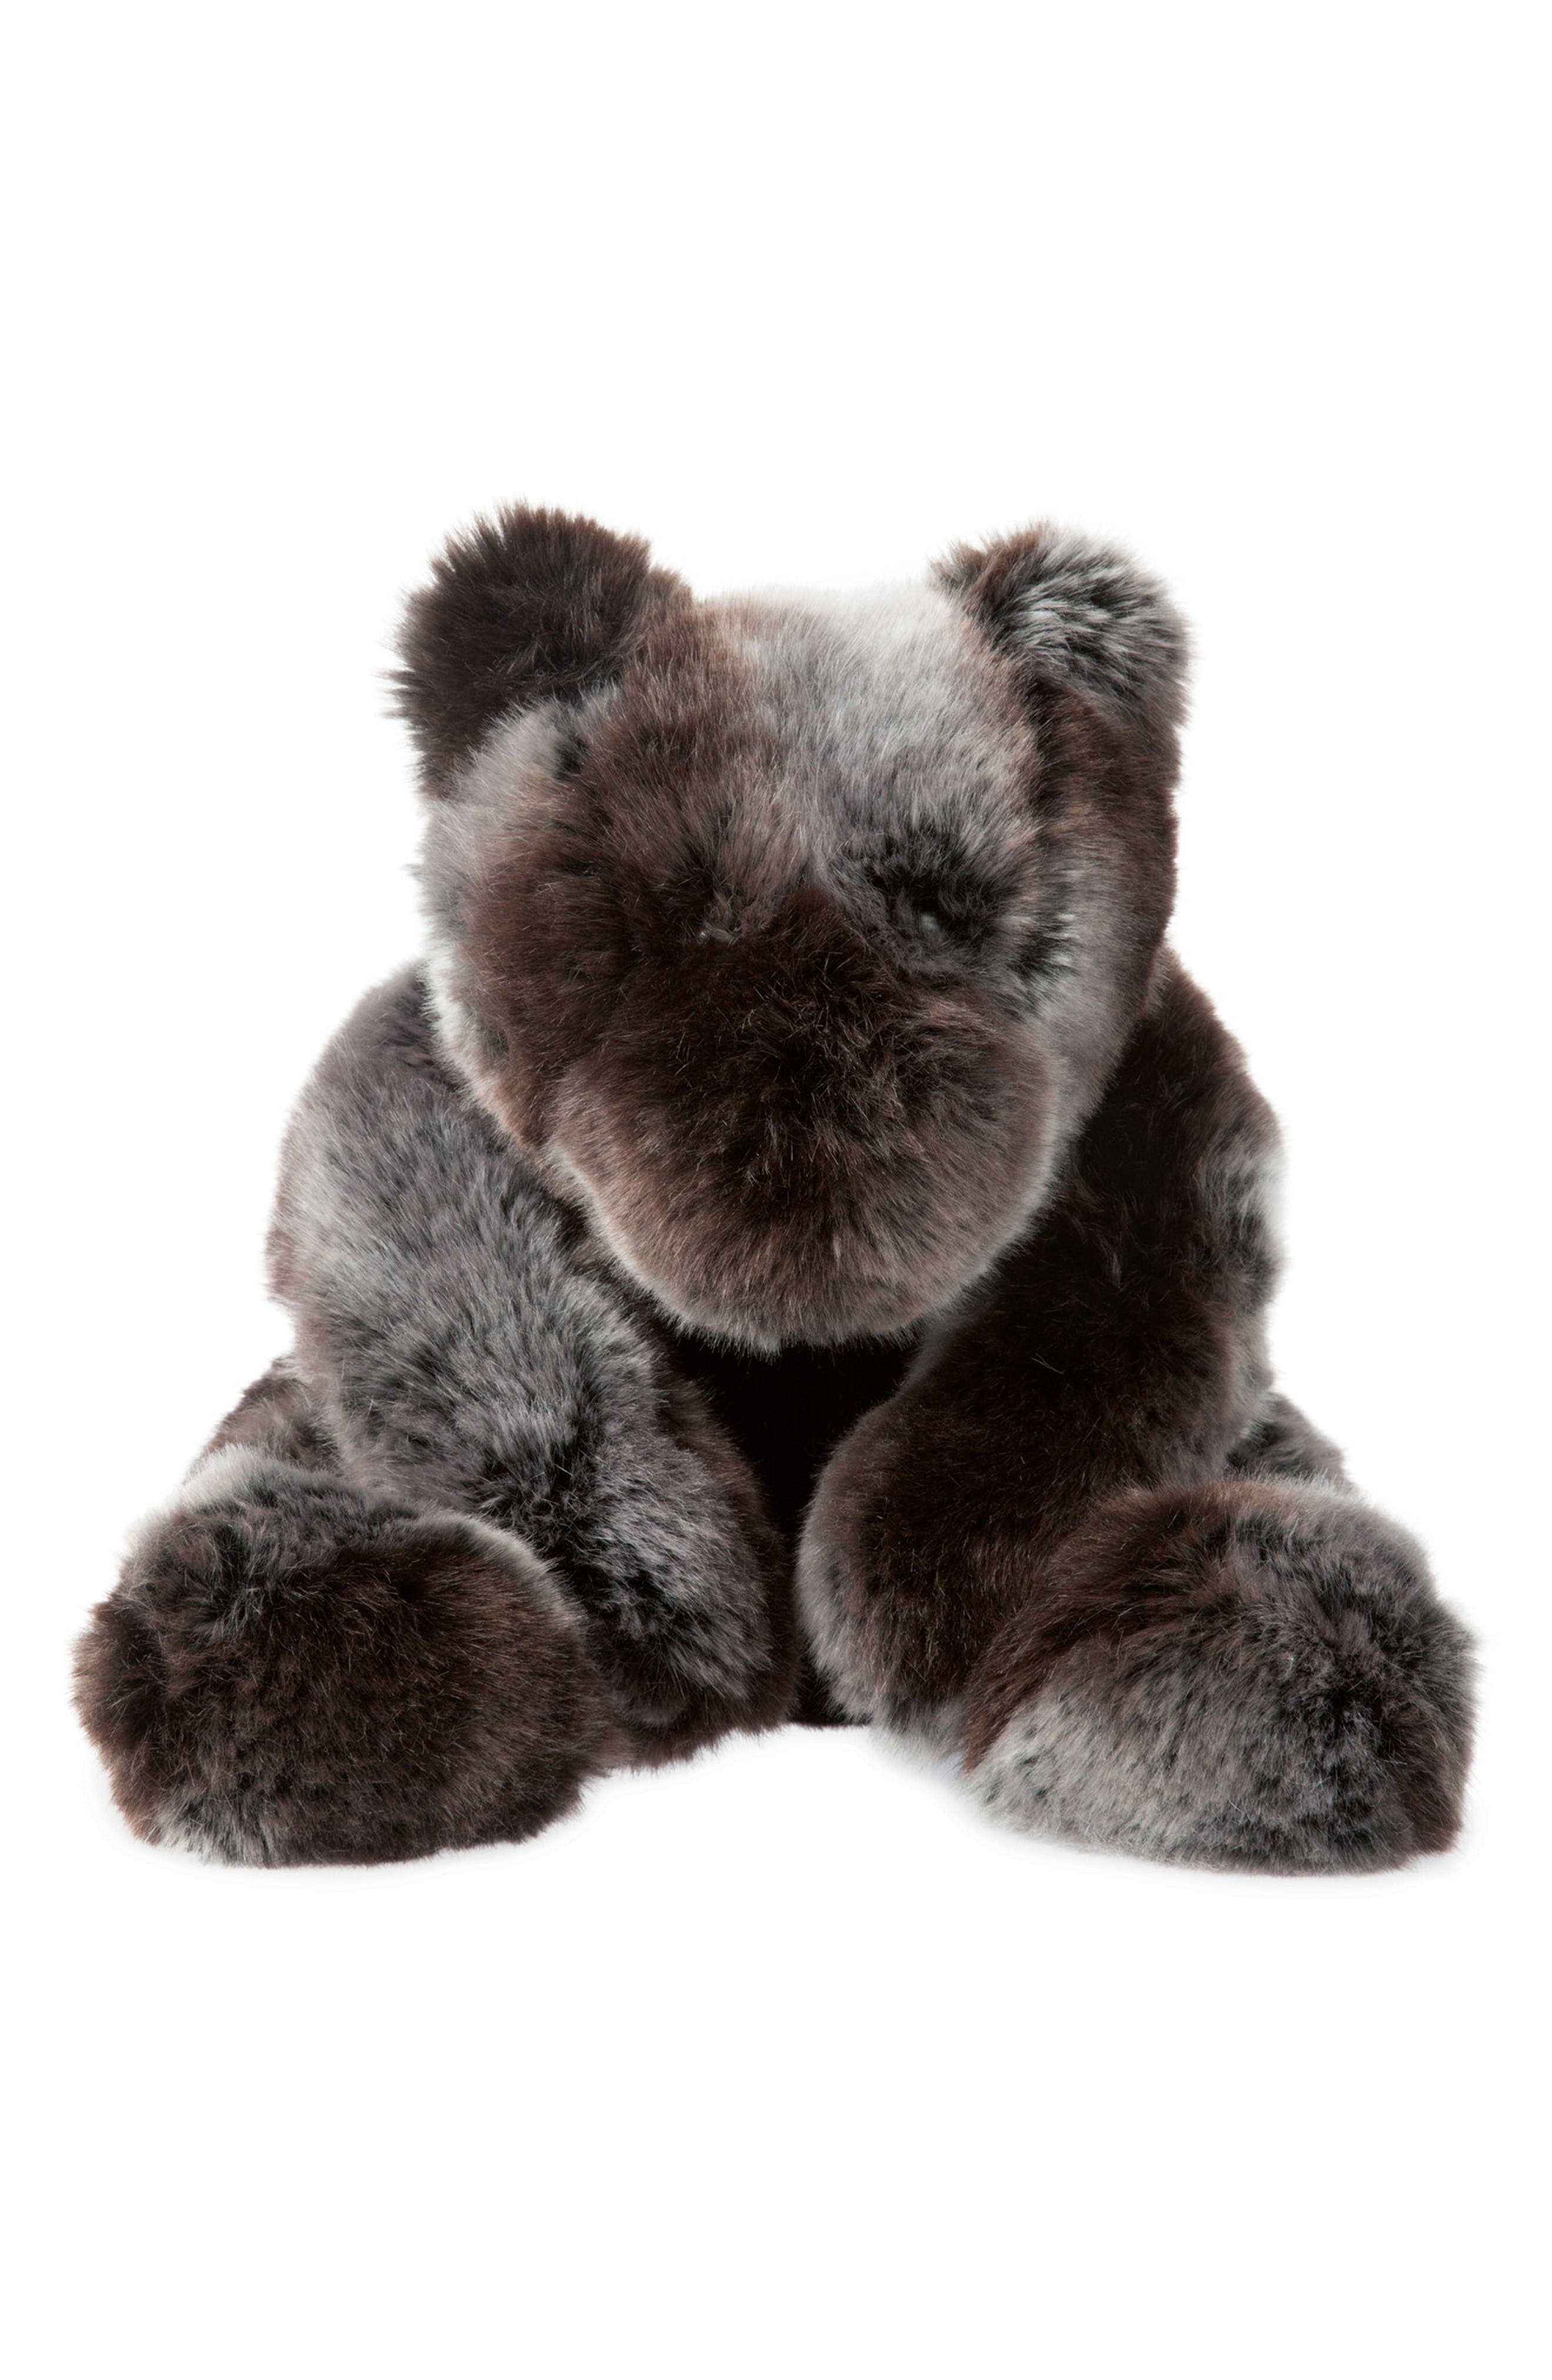 Main Image - Manhattan Toy Luxe Sable Bear Stuffed Animal